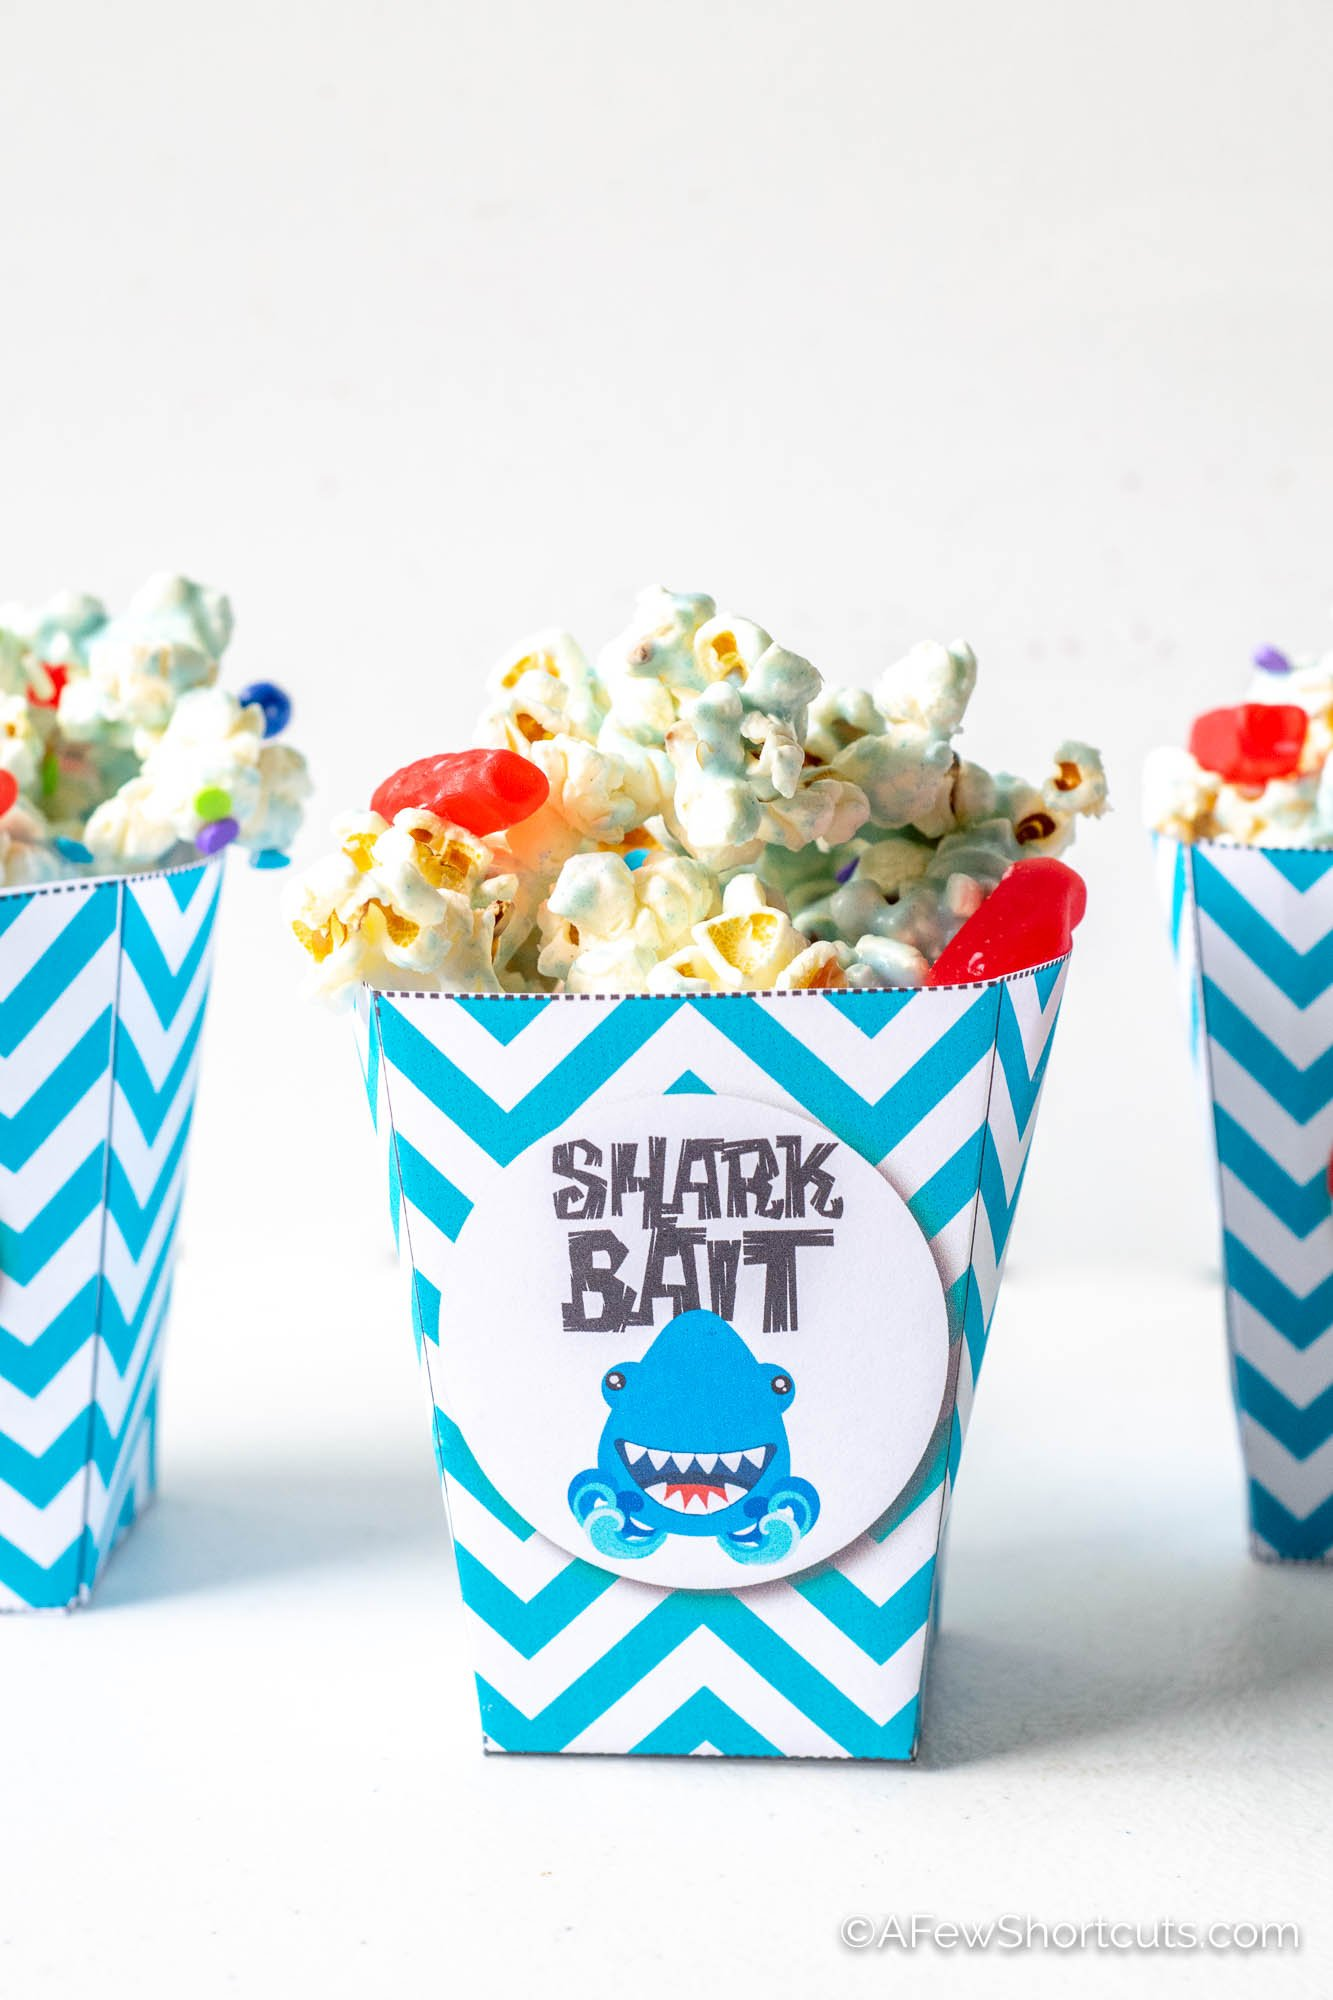 photo relating to Printable Popcorn Boxes titled Shark Bait Snack Blend and Printable Popcorn Box - A Couple Shortcuts